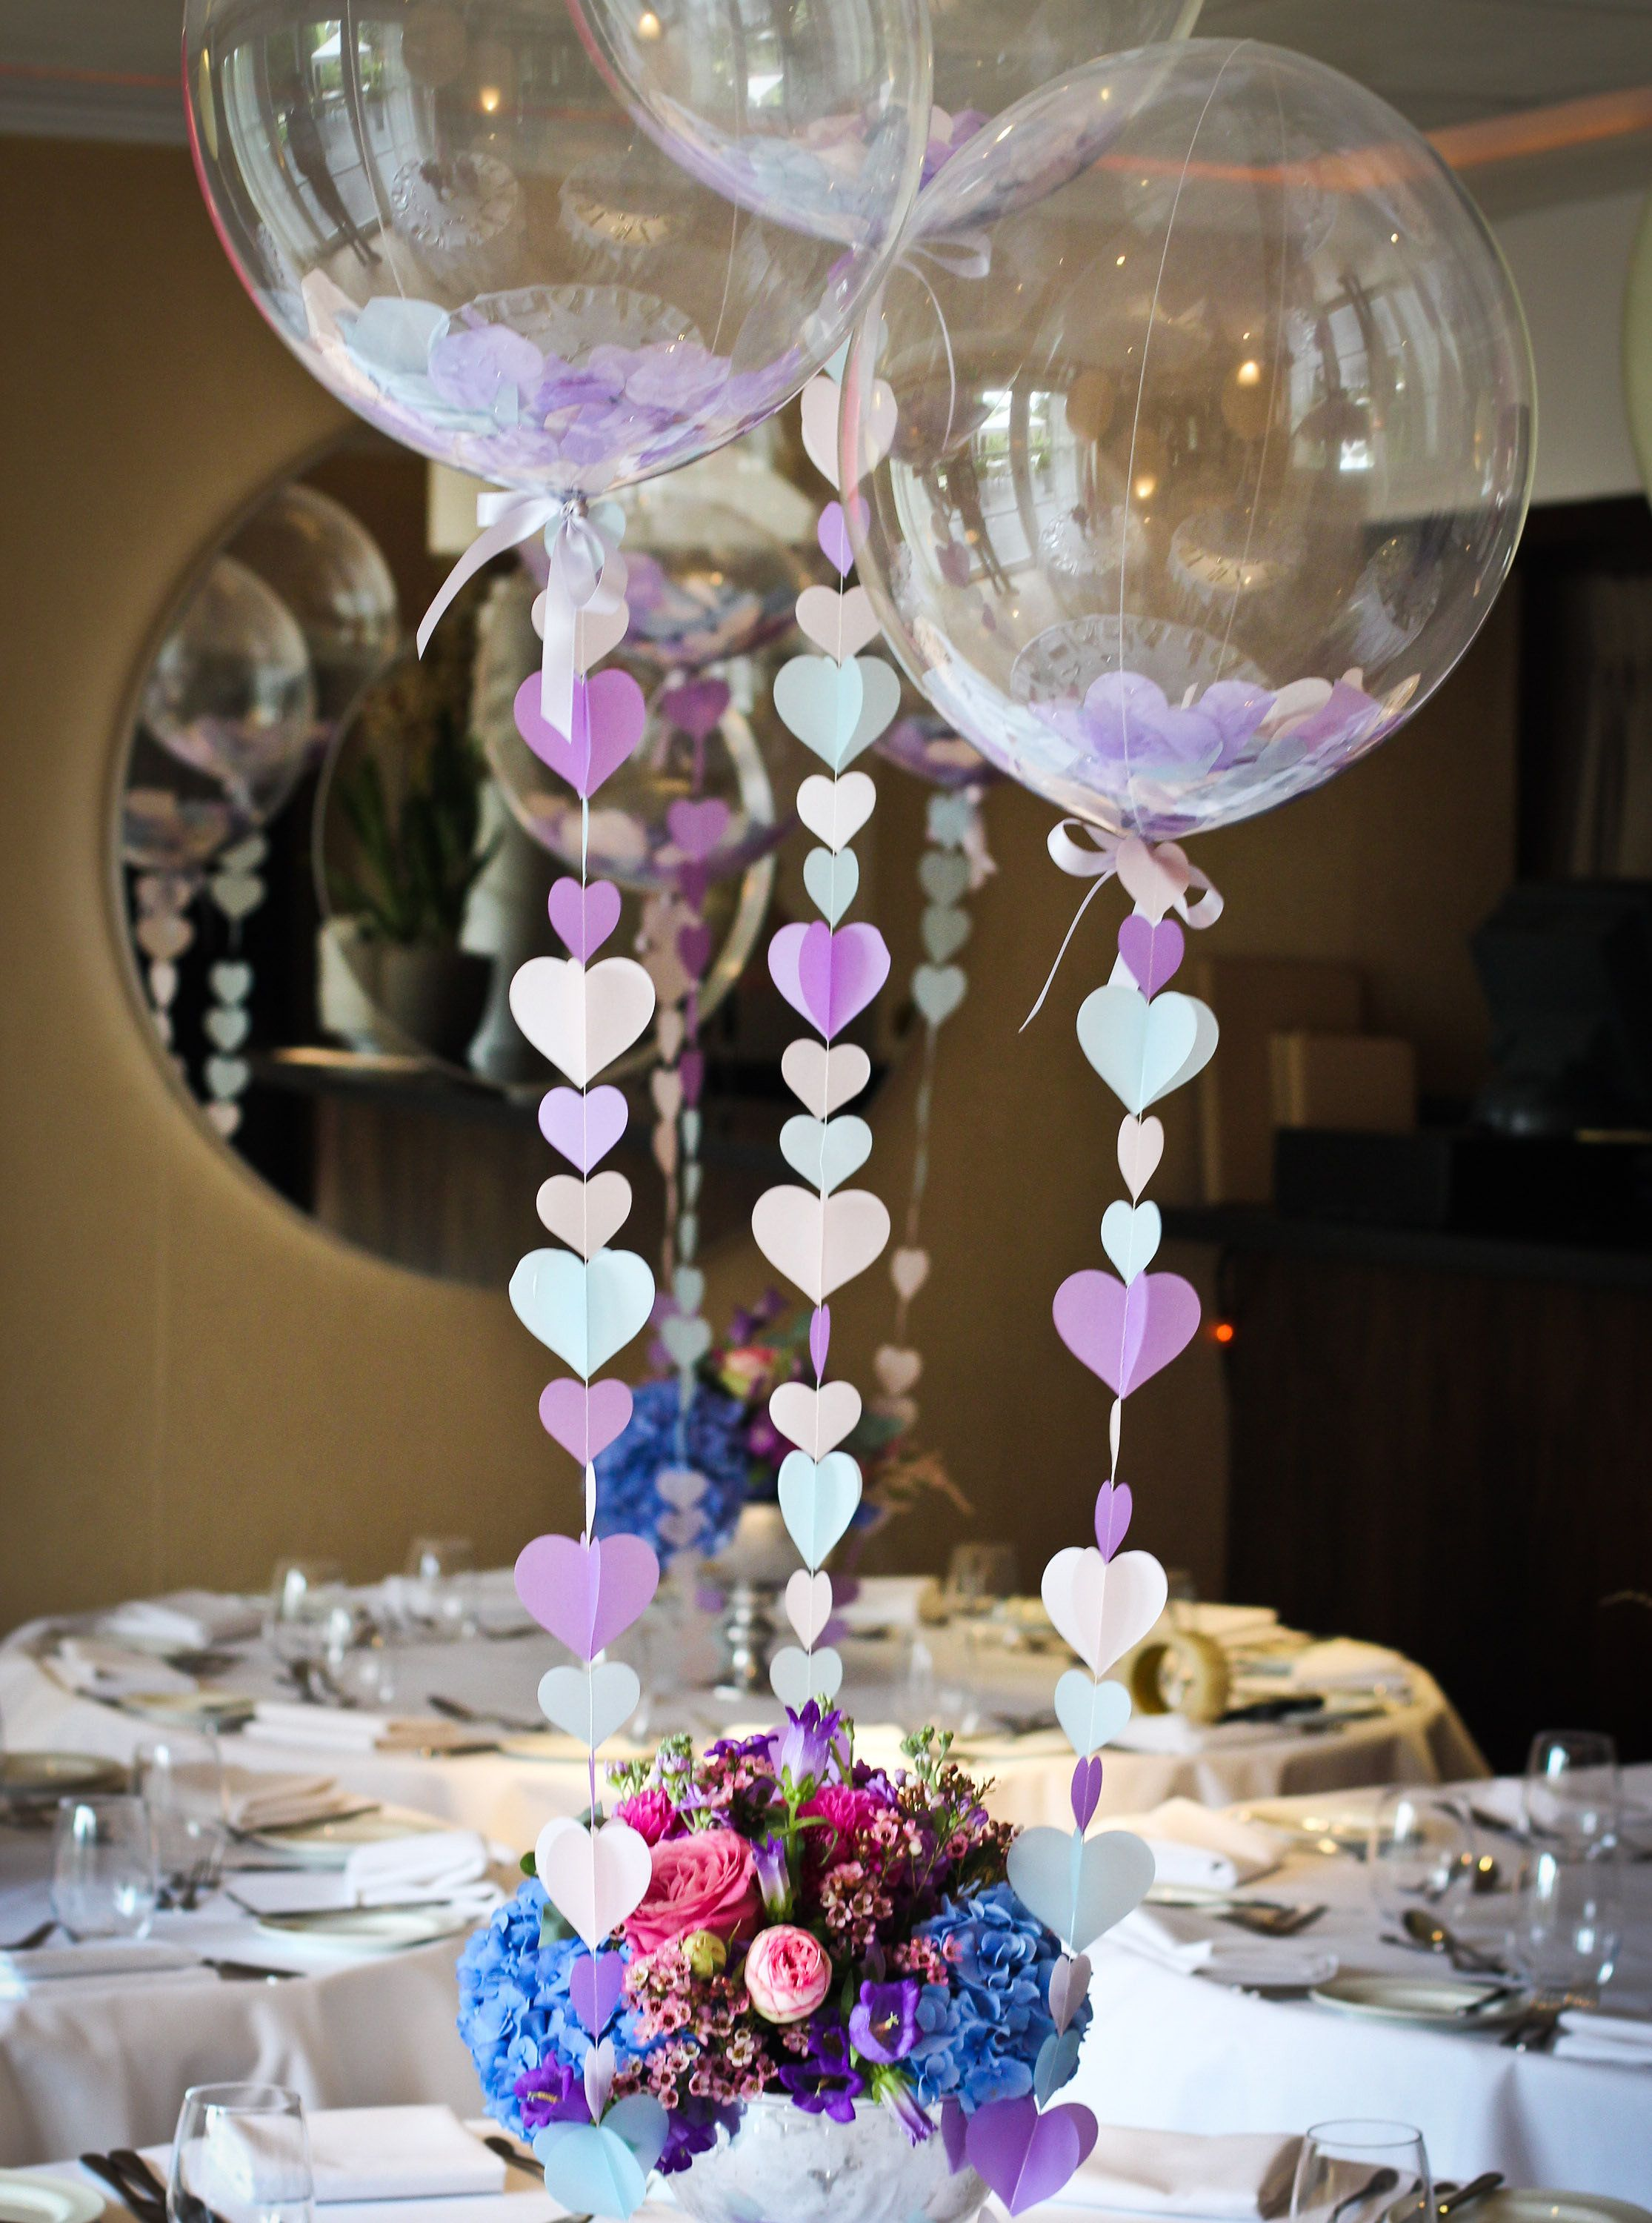 Balloon Centrepiece Table Decoration With Heart Strings For A